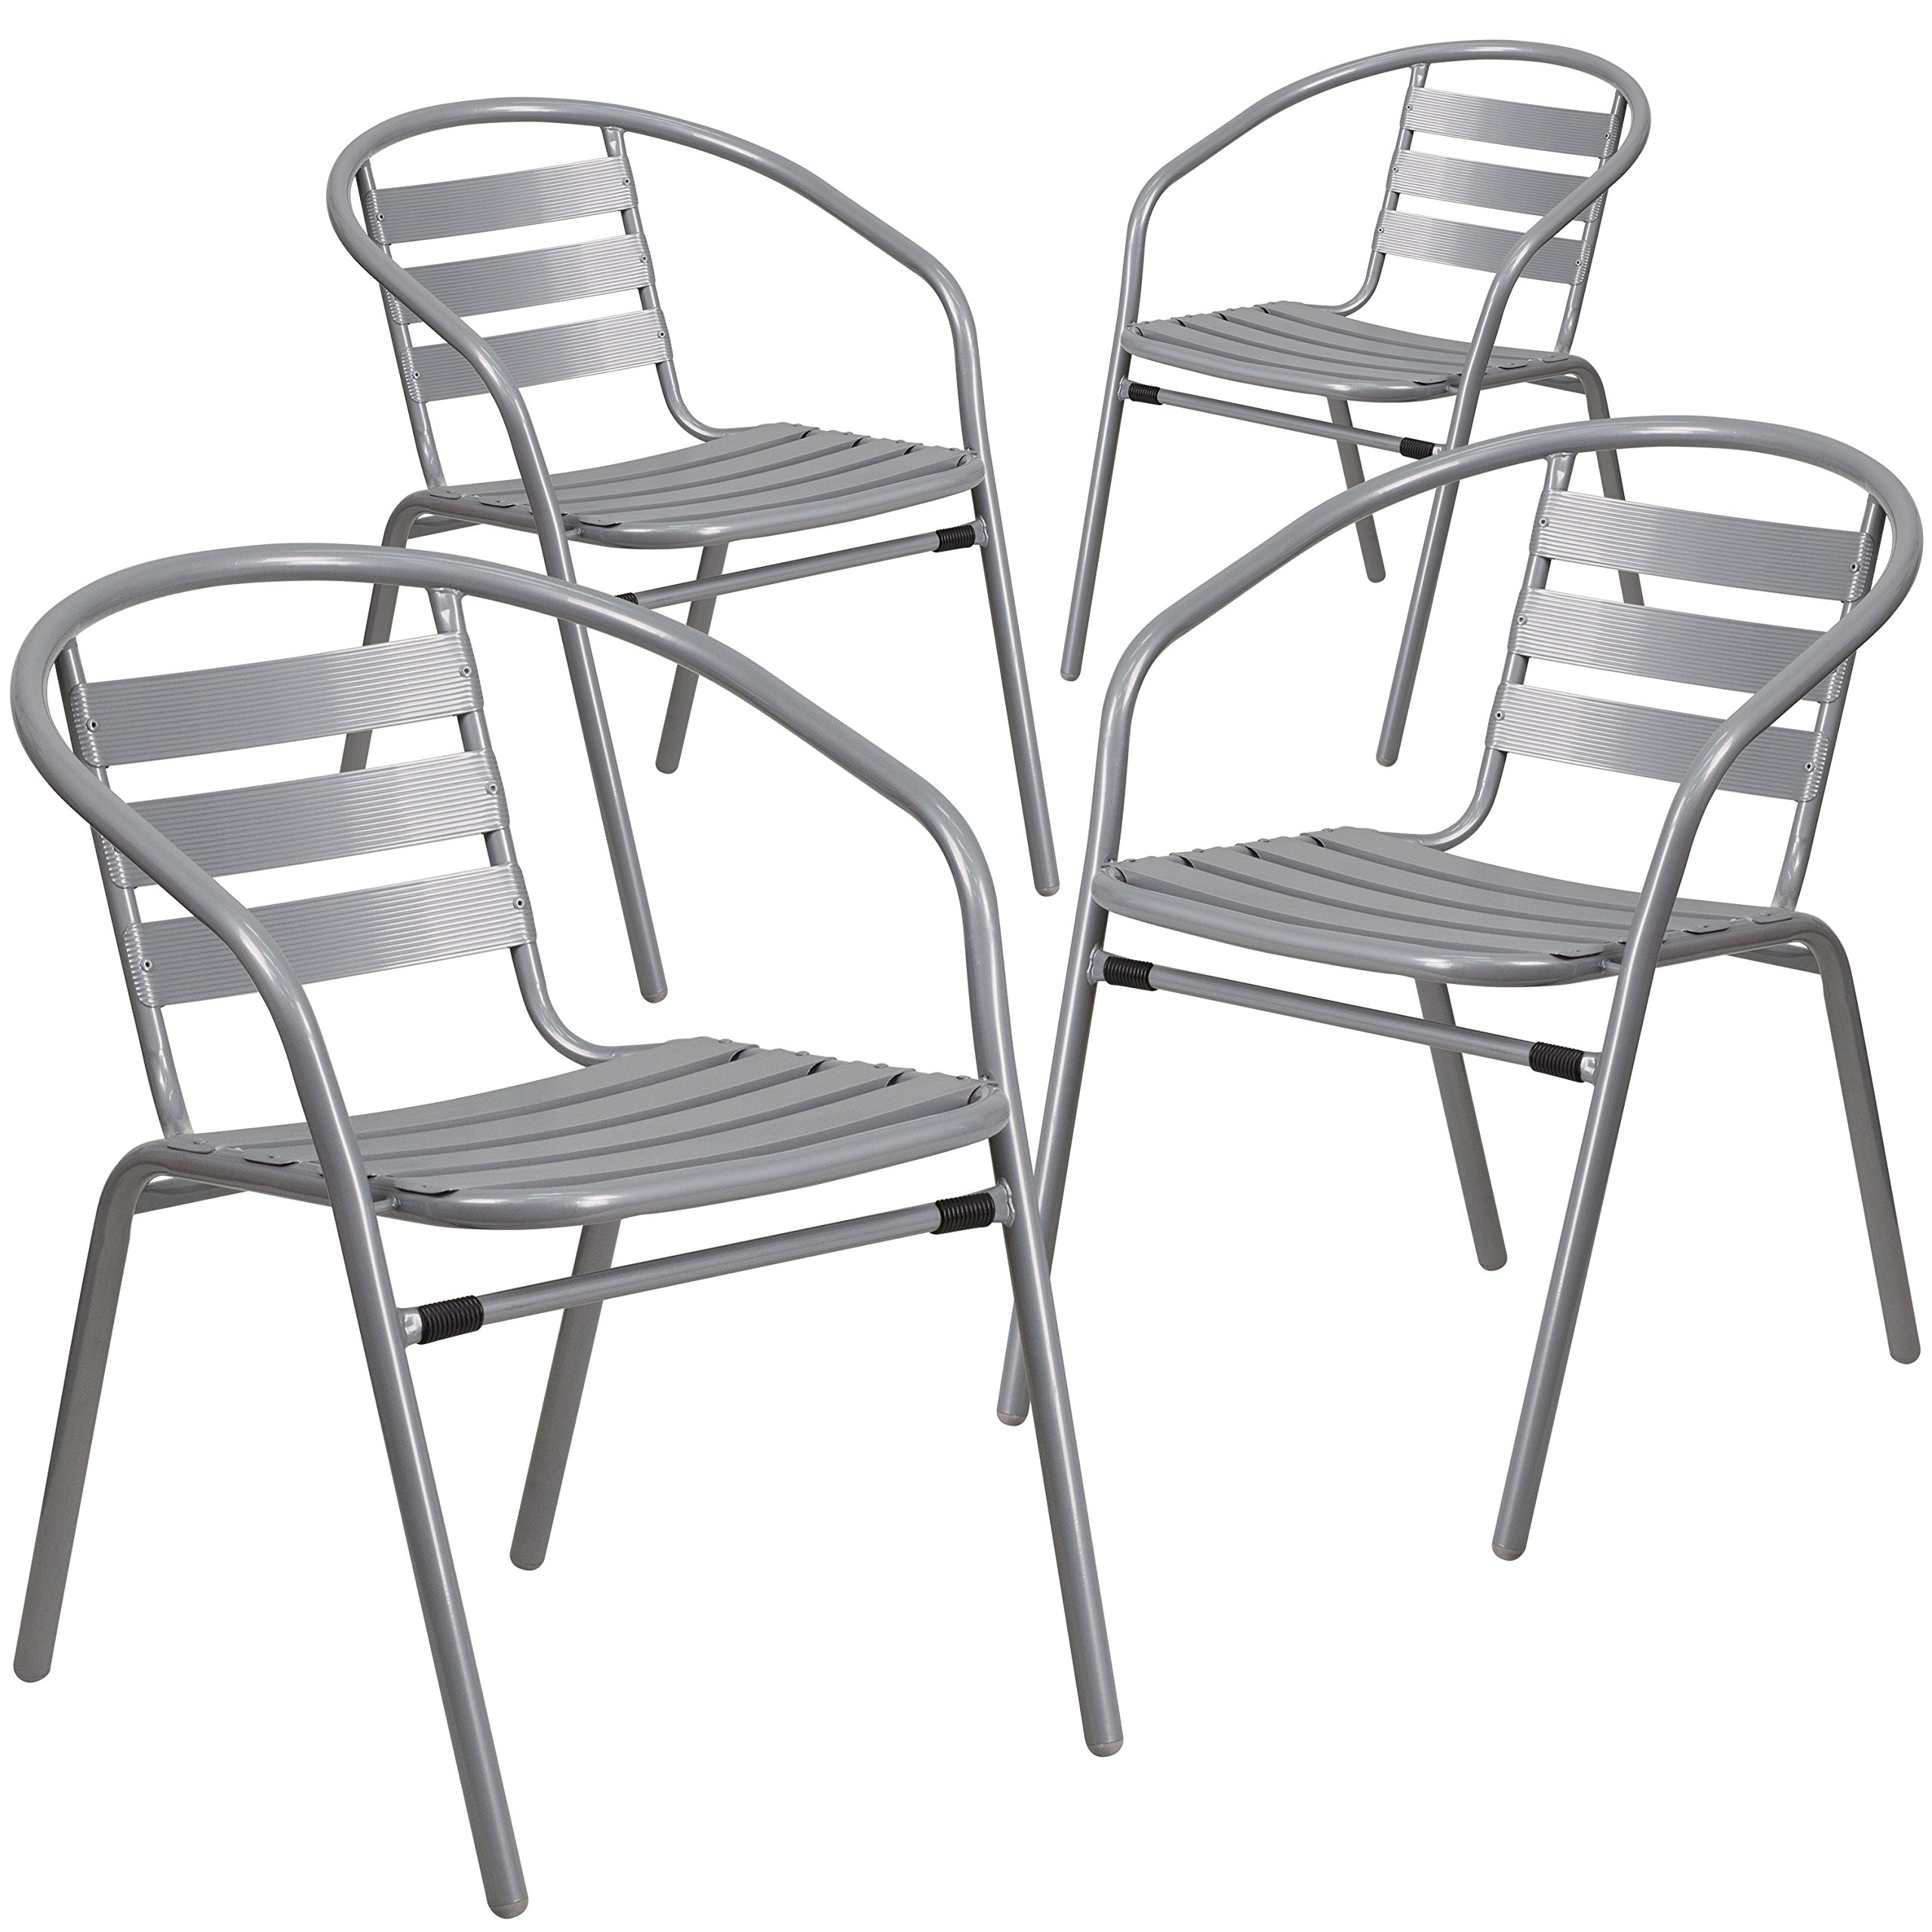 Flash Furniture 4 Pk. Silver Metal Restaurant Stack Chair with Aluminum Slats by Flash Furniture (Image #1)